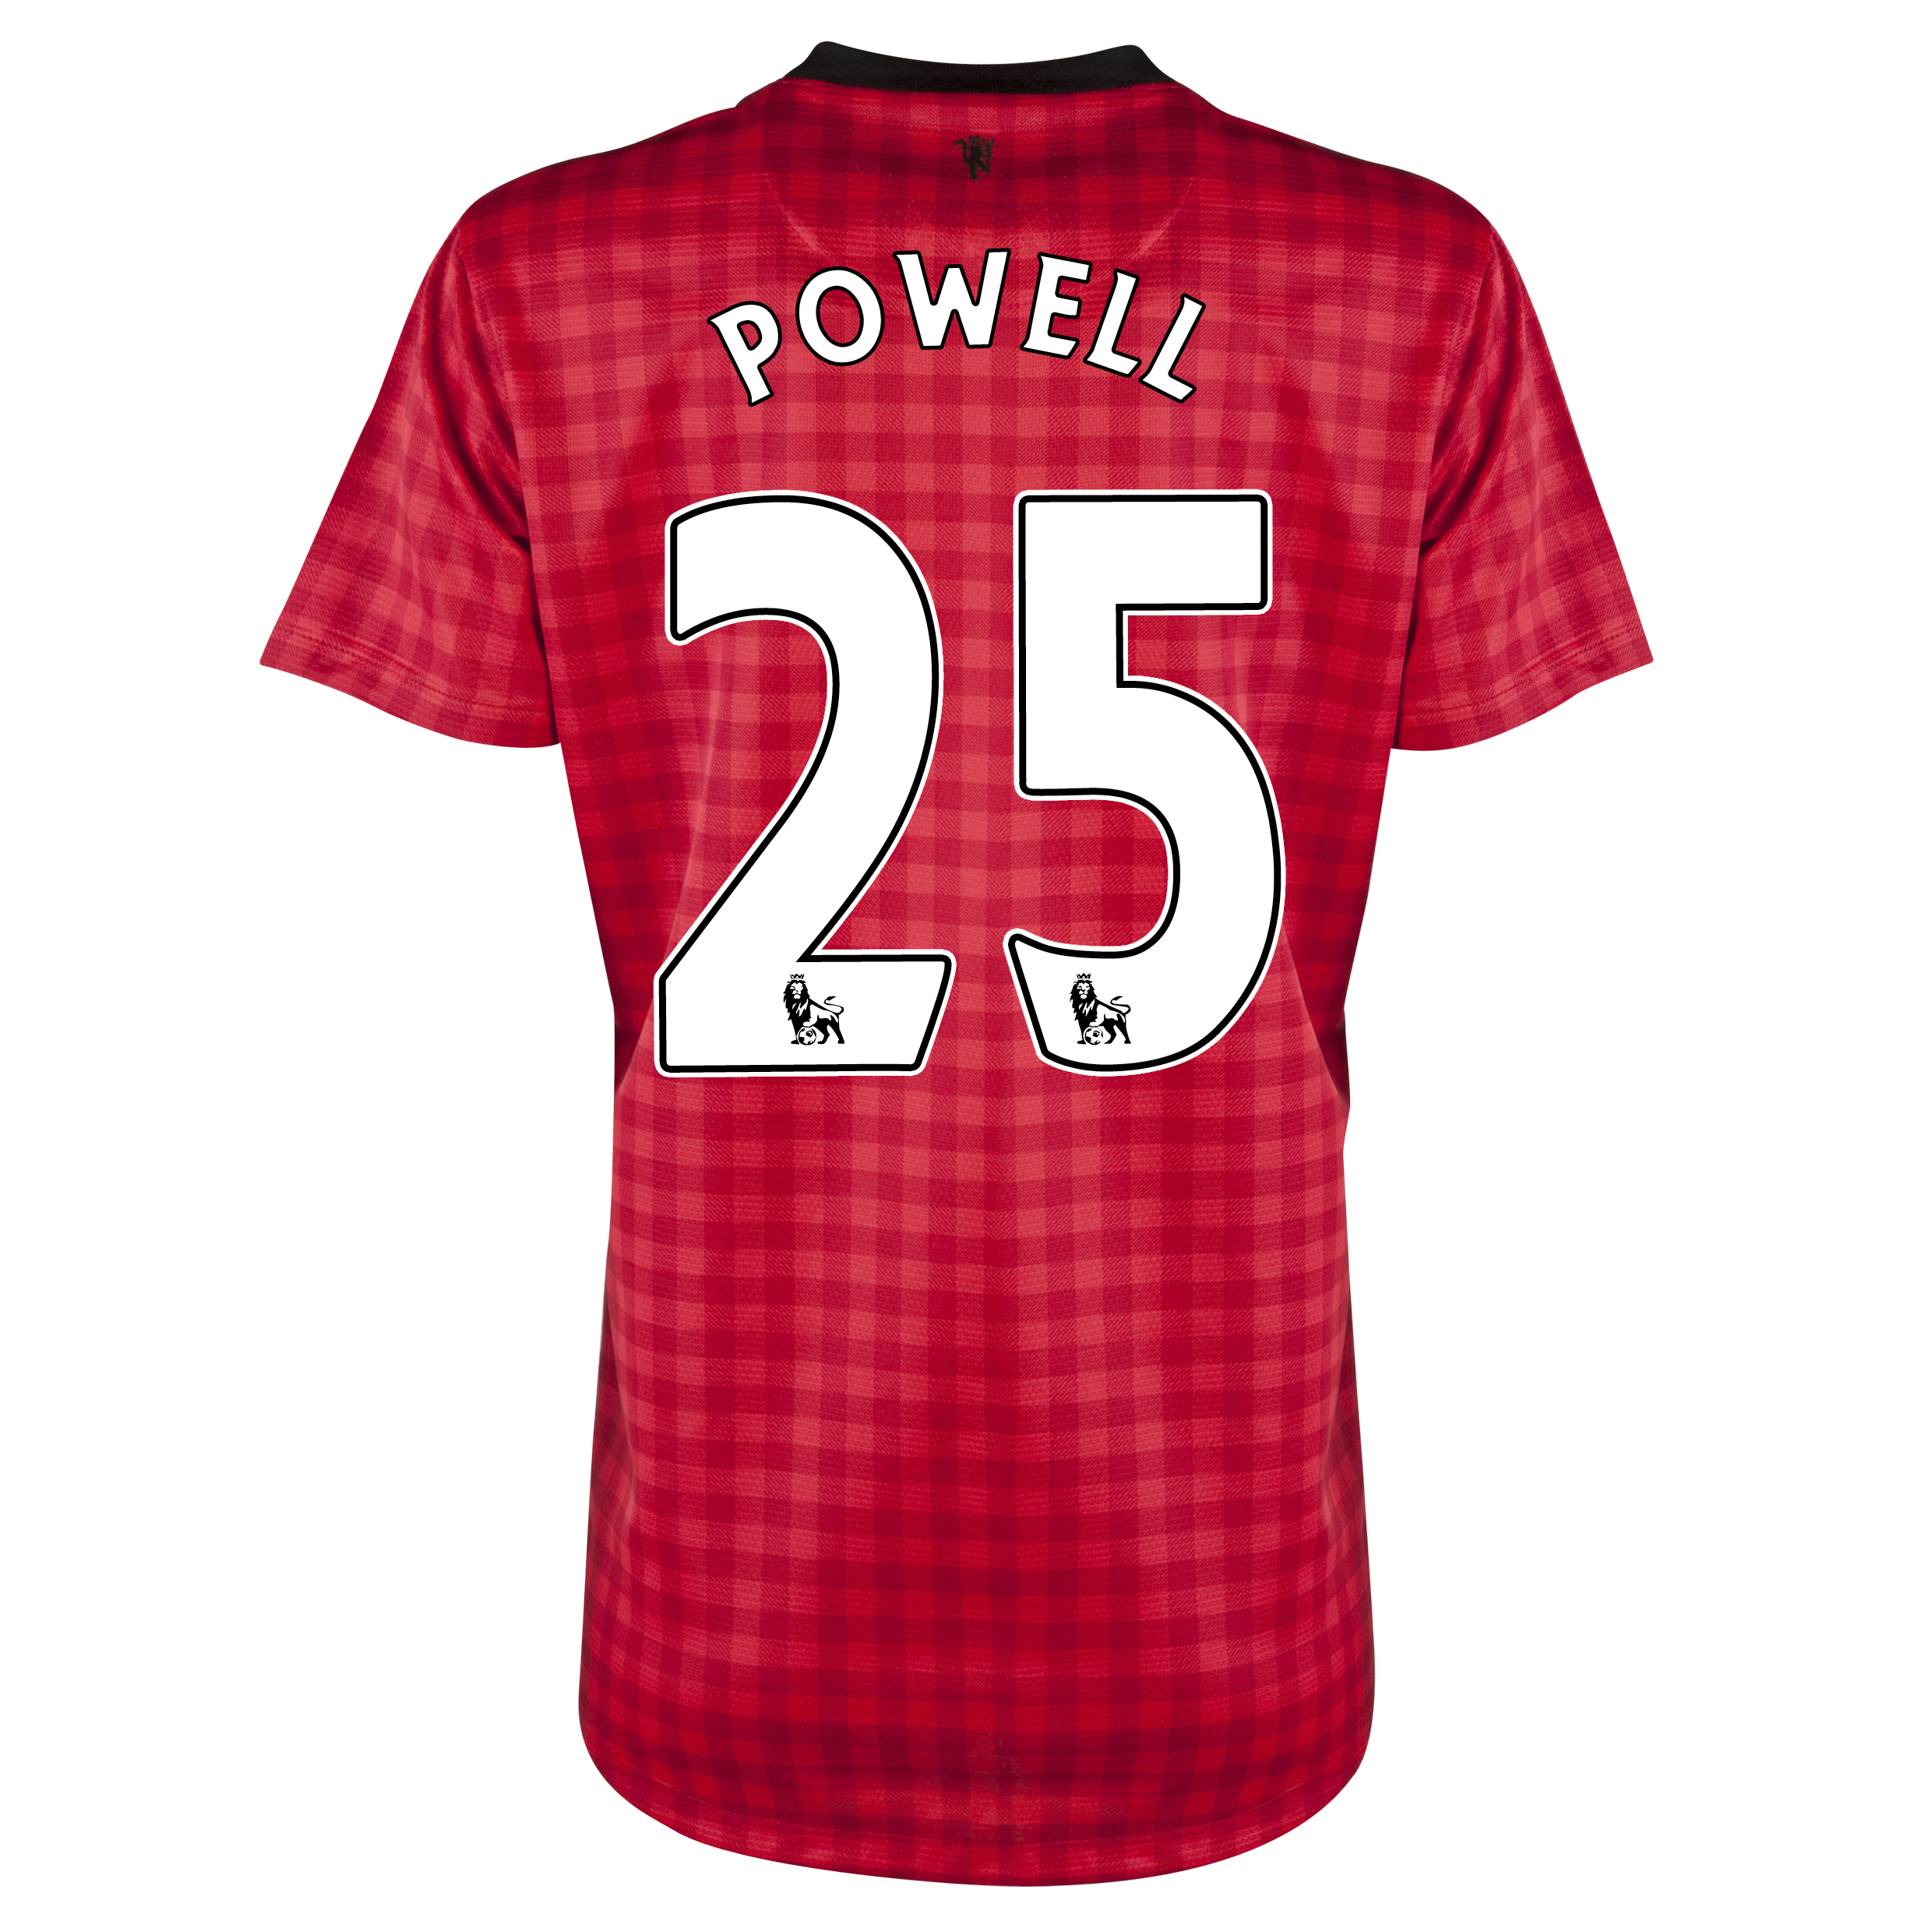 Manchester United Home Shirt 2012/13 - Womens with Powell 25 printing